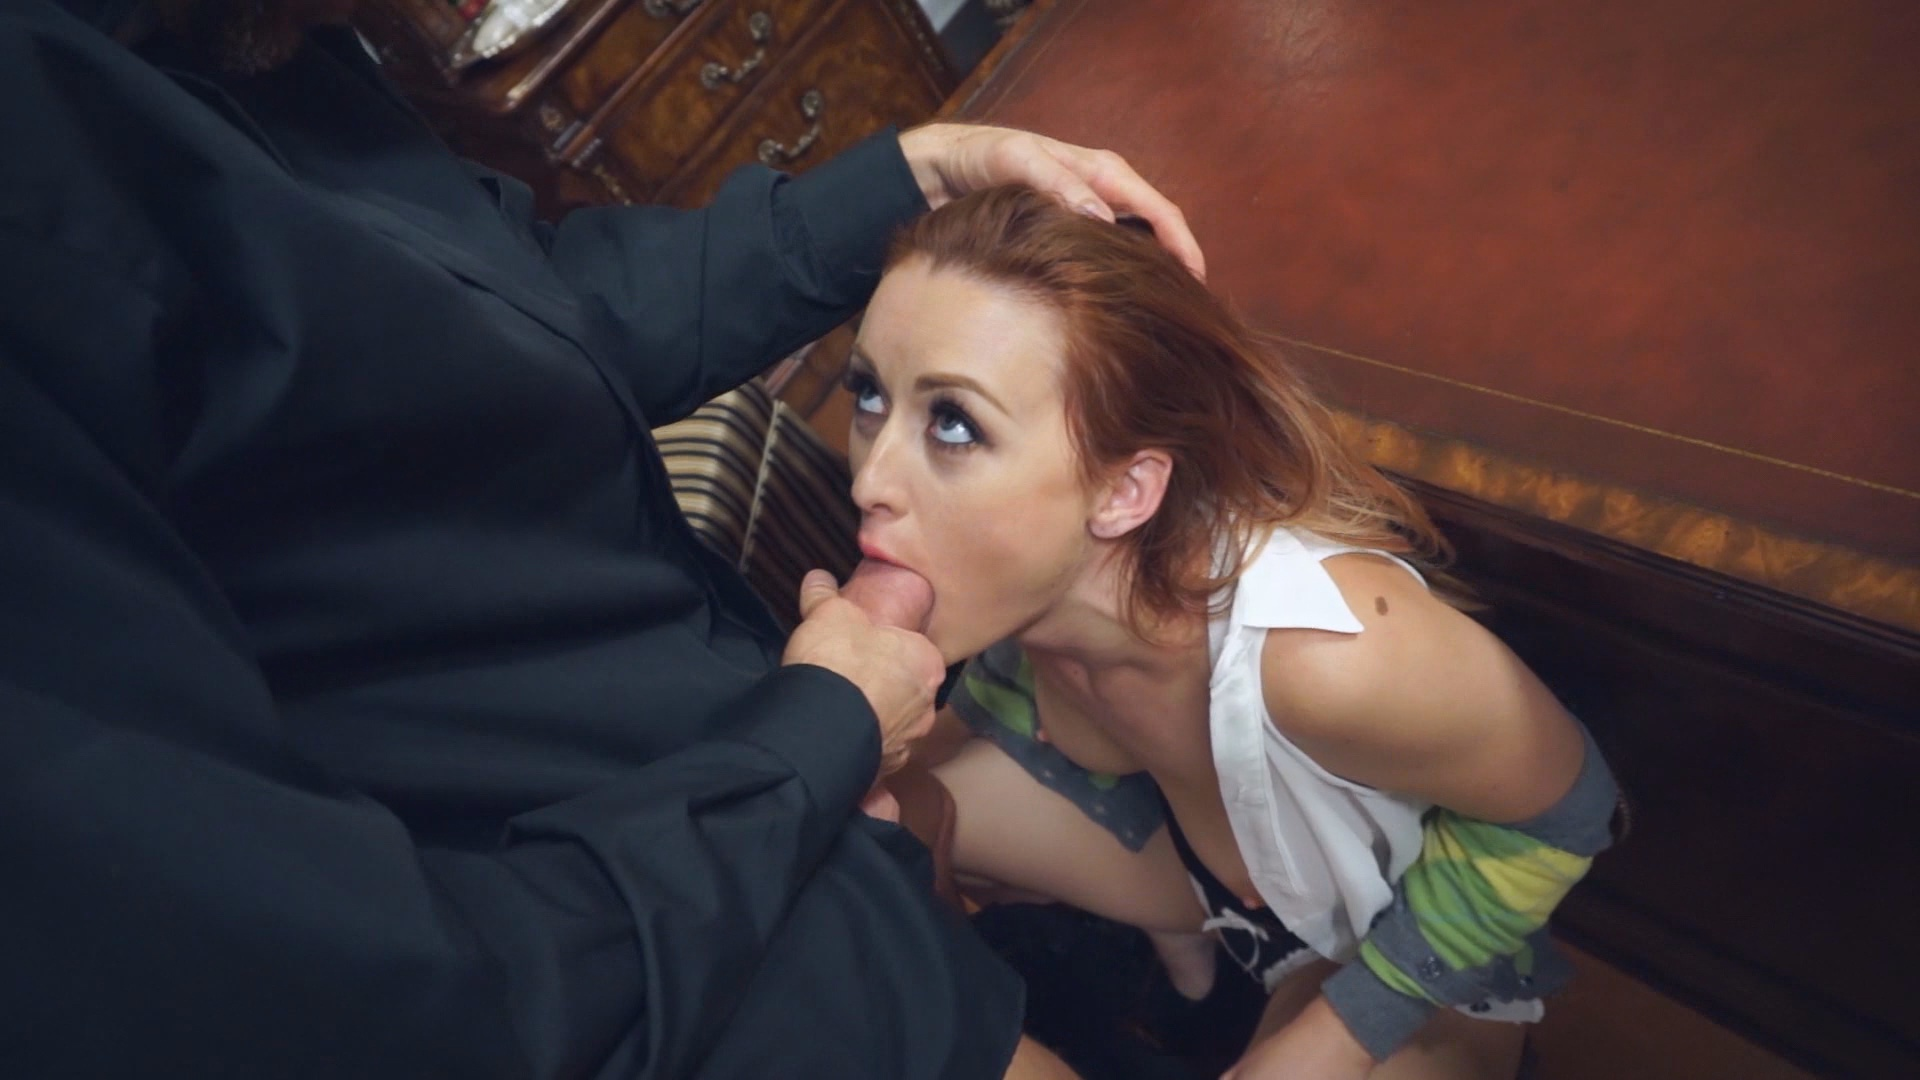 Hard Passion 2 xvideos181008